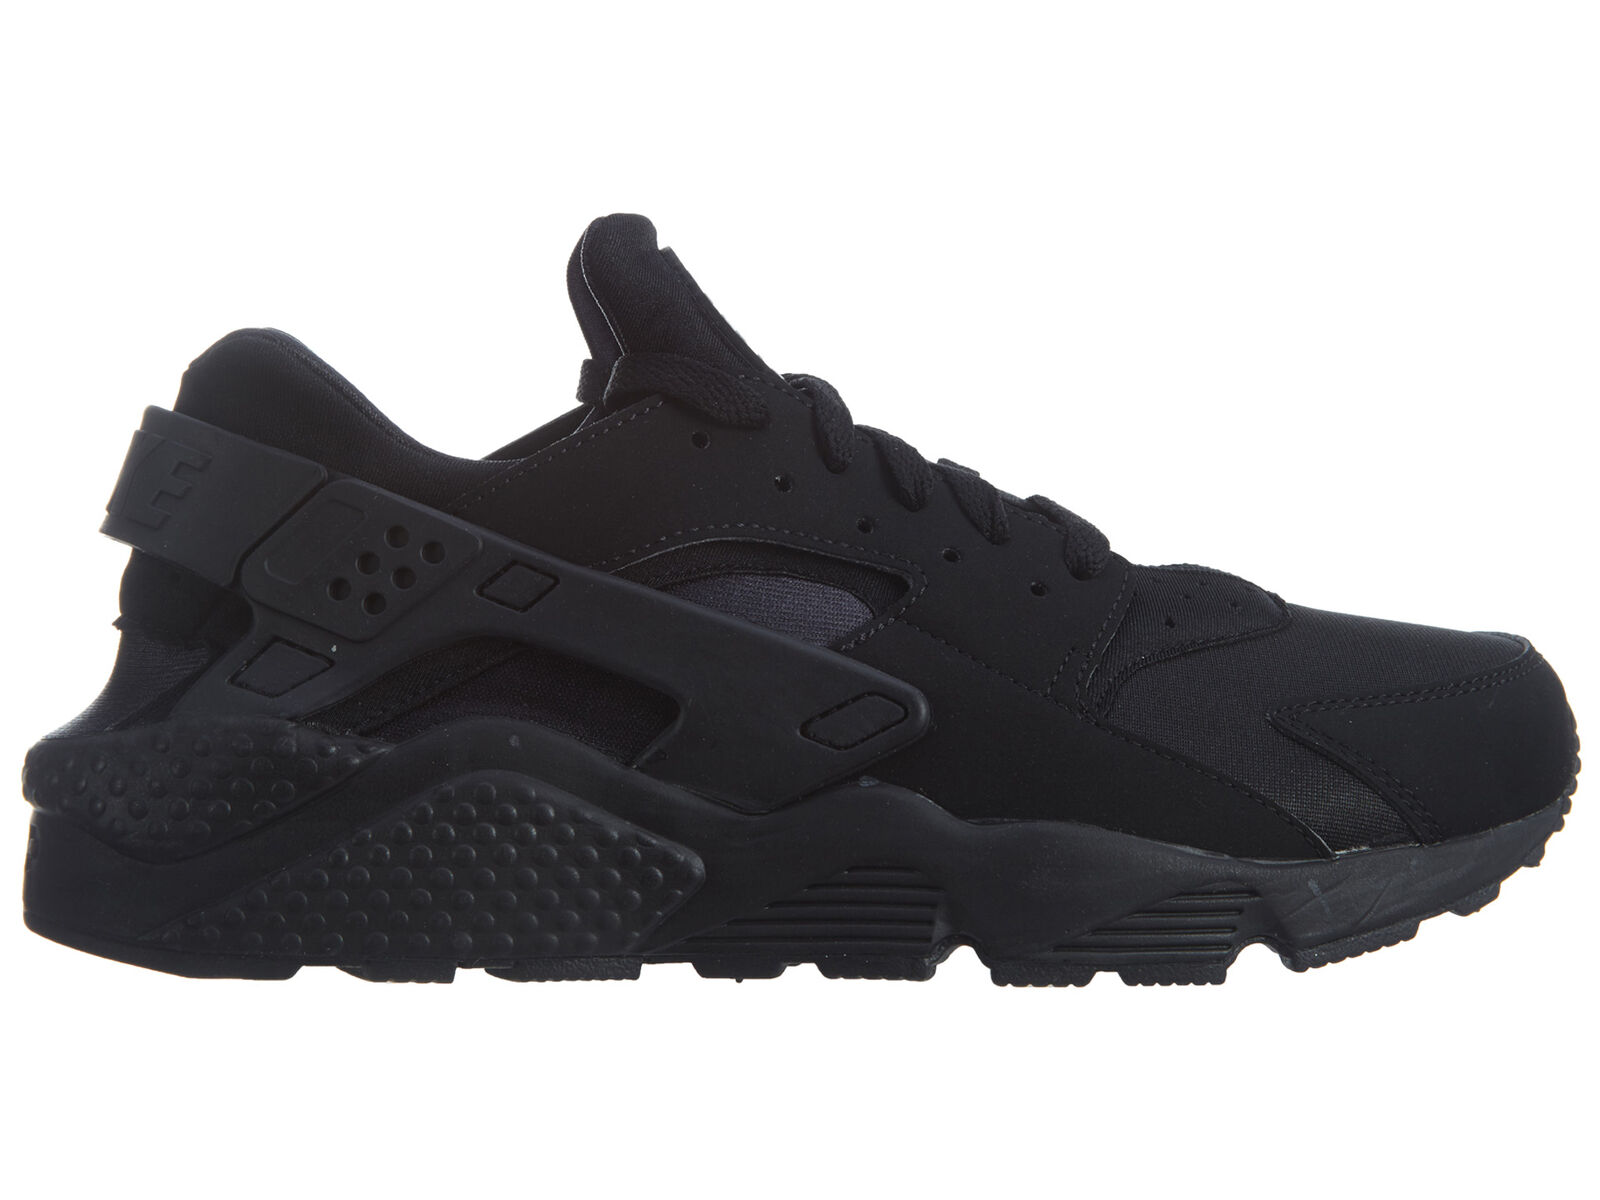 Nike Air Huarache Mens 318429-003 Black Textile Athletic Running Shoes Comfortable best-selling model of the brand